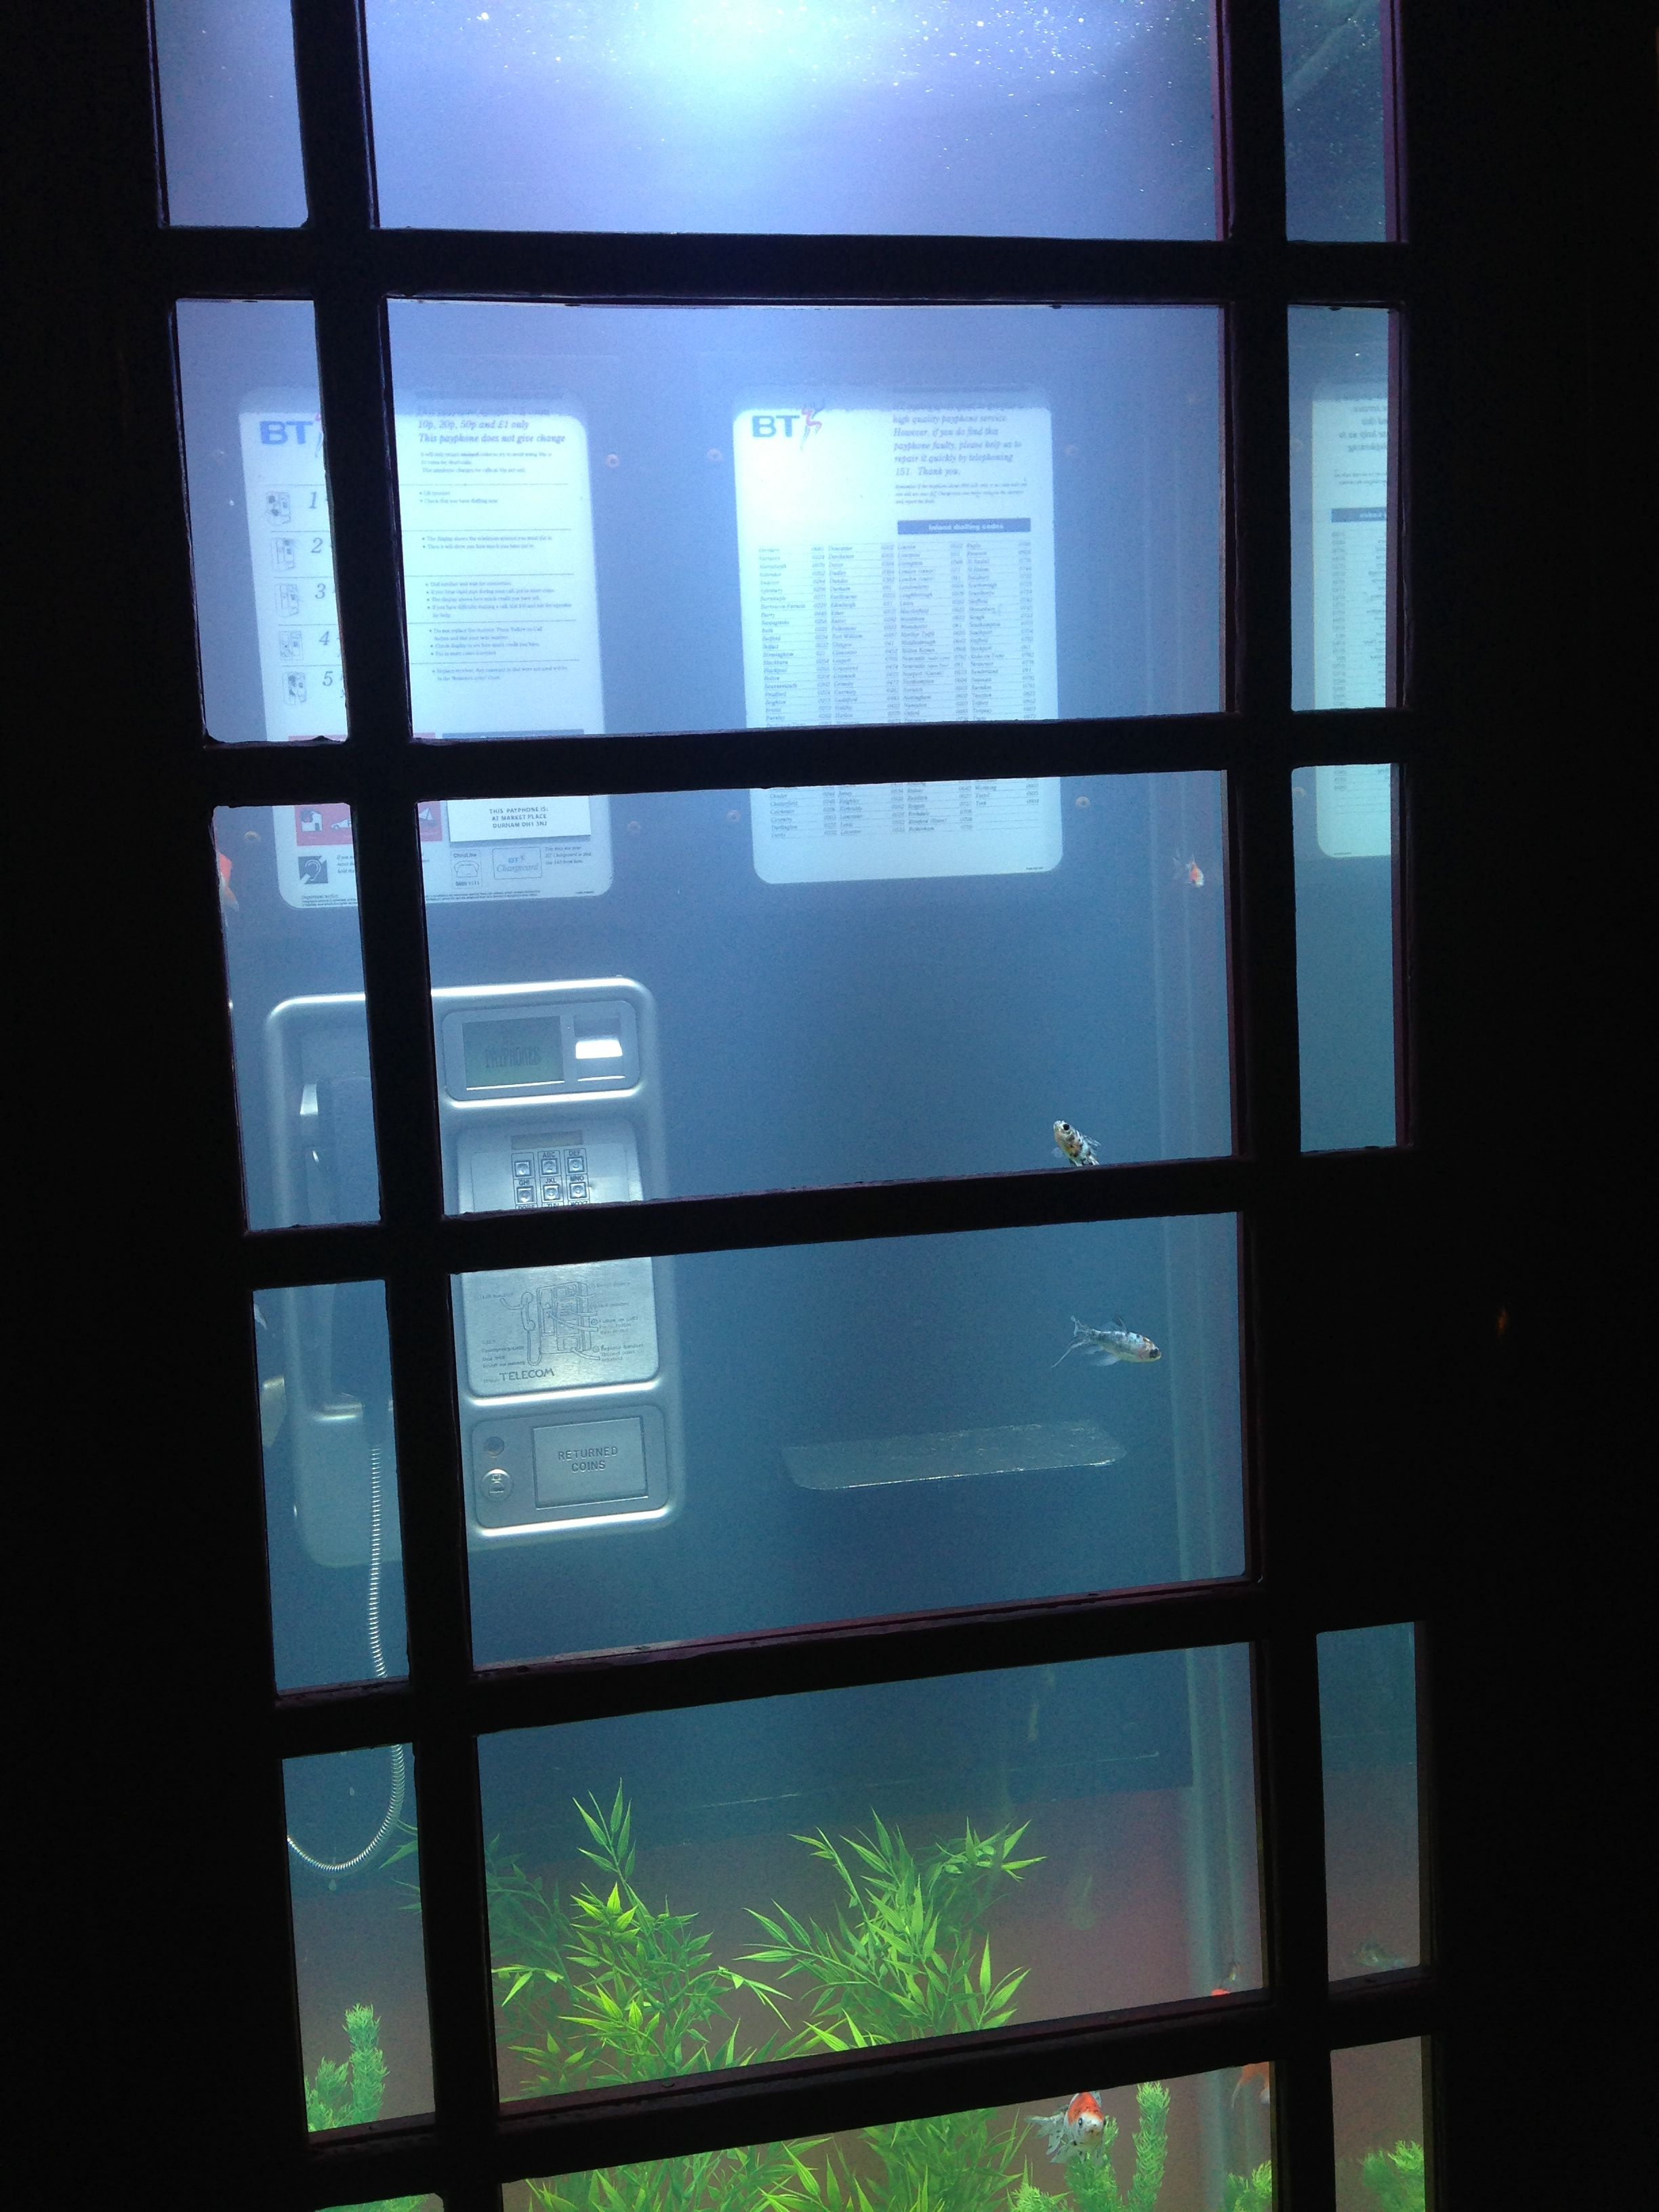 652955d77705011db3f55dcd8cf833d6 Impressionnant De Lumiere Aquarium